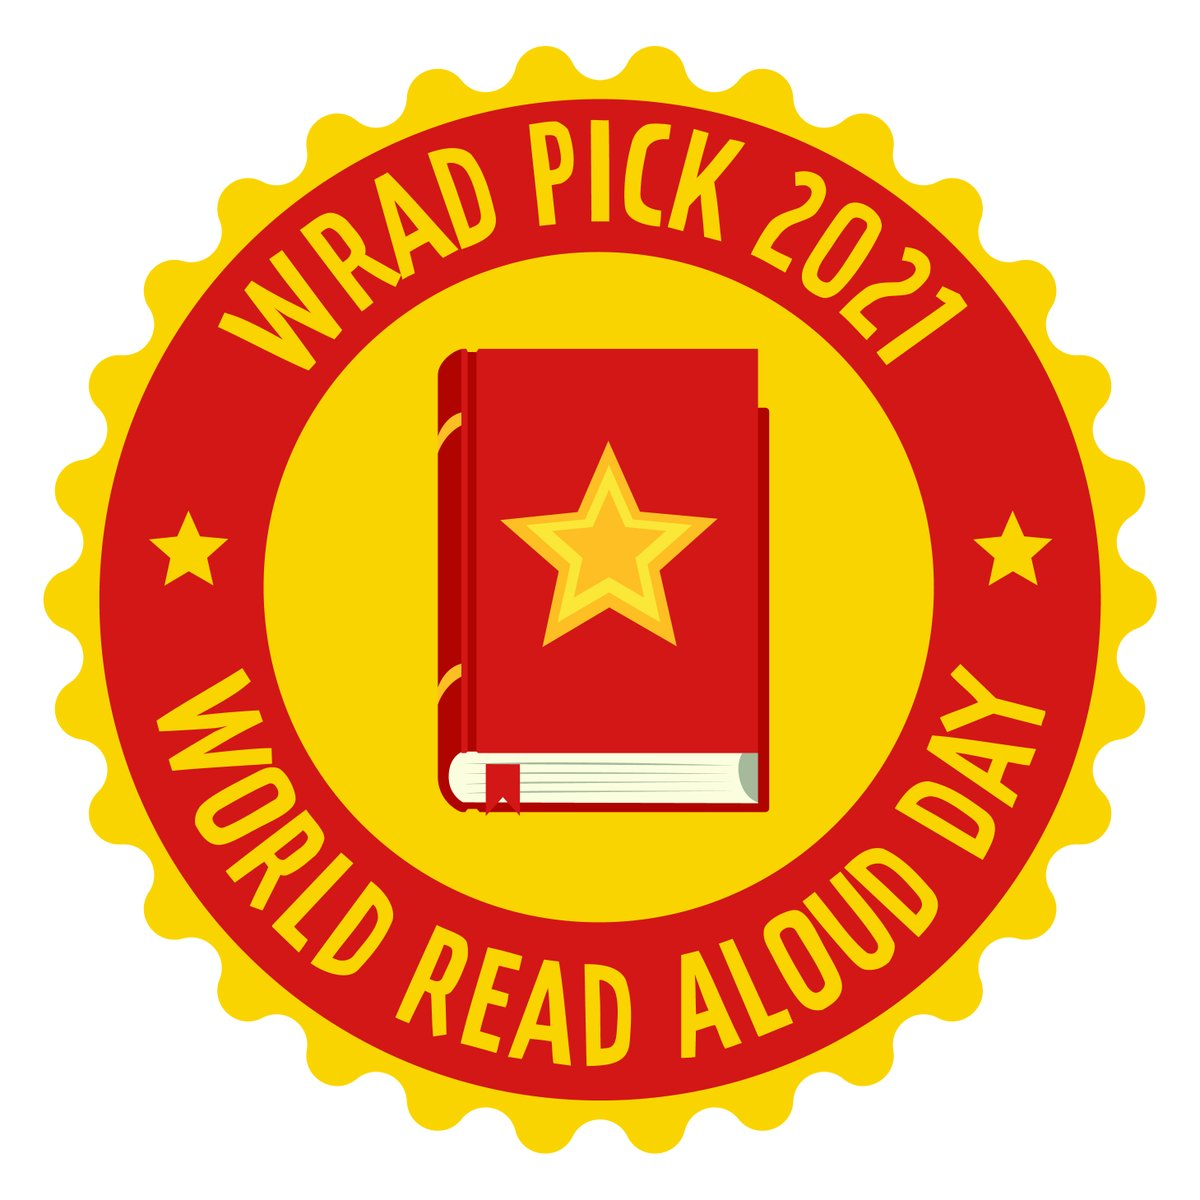 Honored to have my book THE WORD COLLECTOR picked for WRAD. Scholastic has released a VirtualKit with free resources, including activities for the Word Collector & discussion guides for my other books. Sign up for the VirtualKit at scholastic.com/worldreadaloud… #WorldReadAloudDay